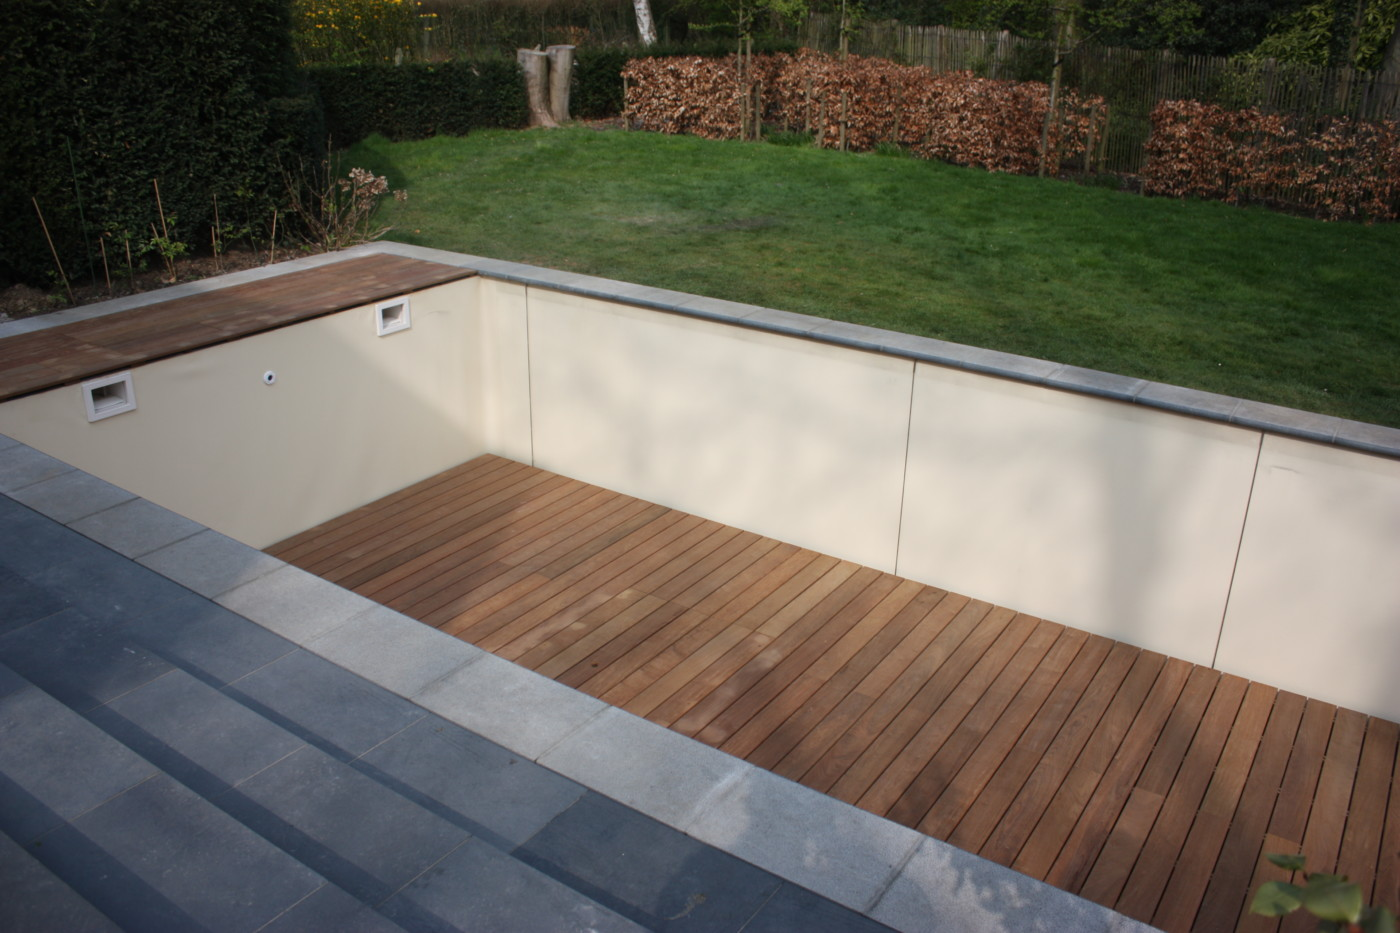 Terrasse en bois sur fond mobile de piscine mt design for Terrasse mobile piscine prix